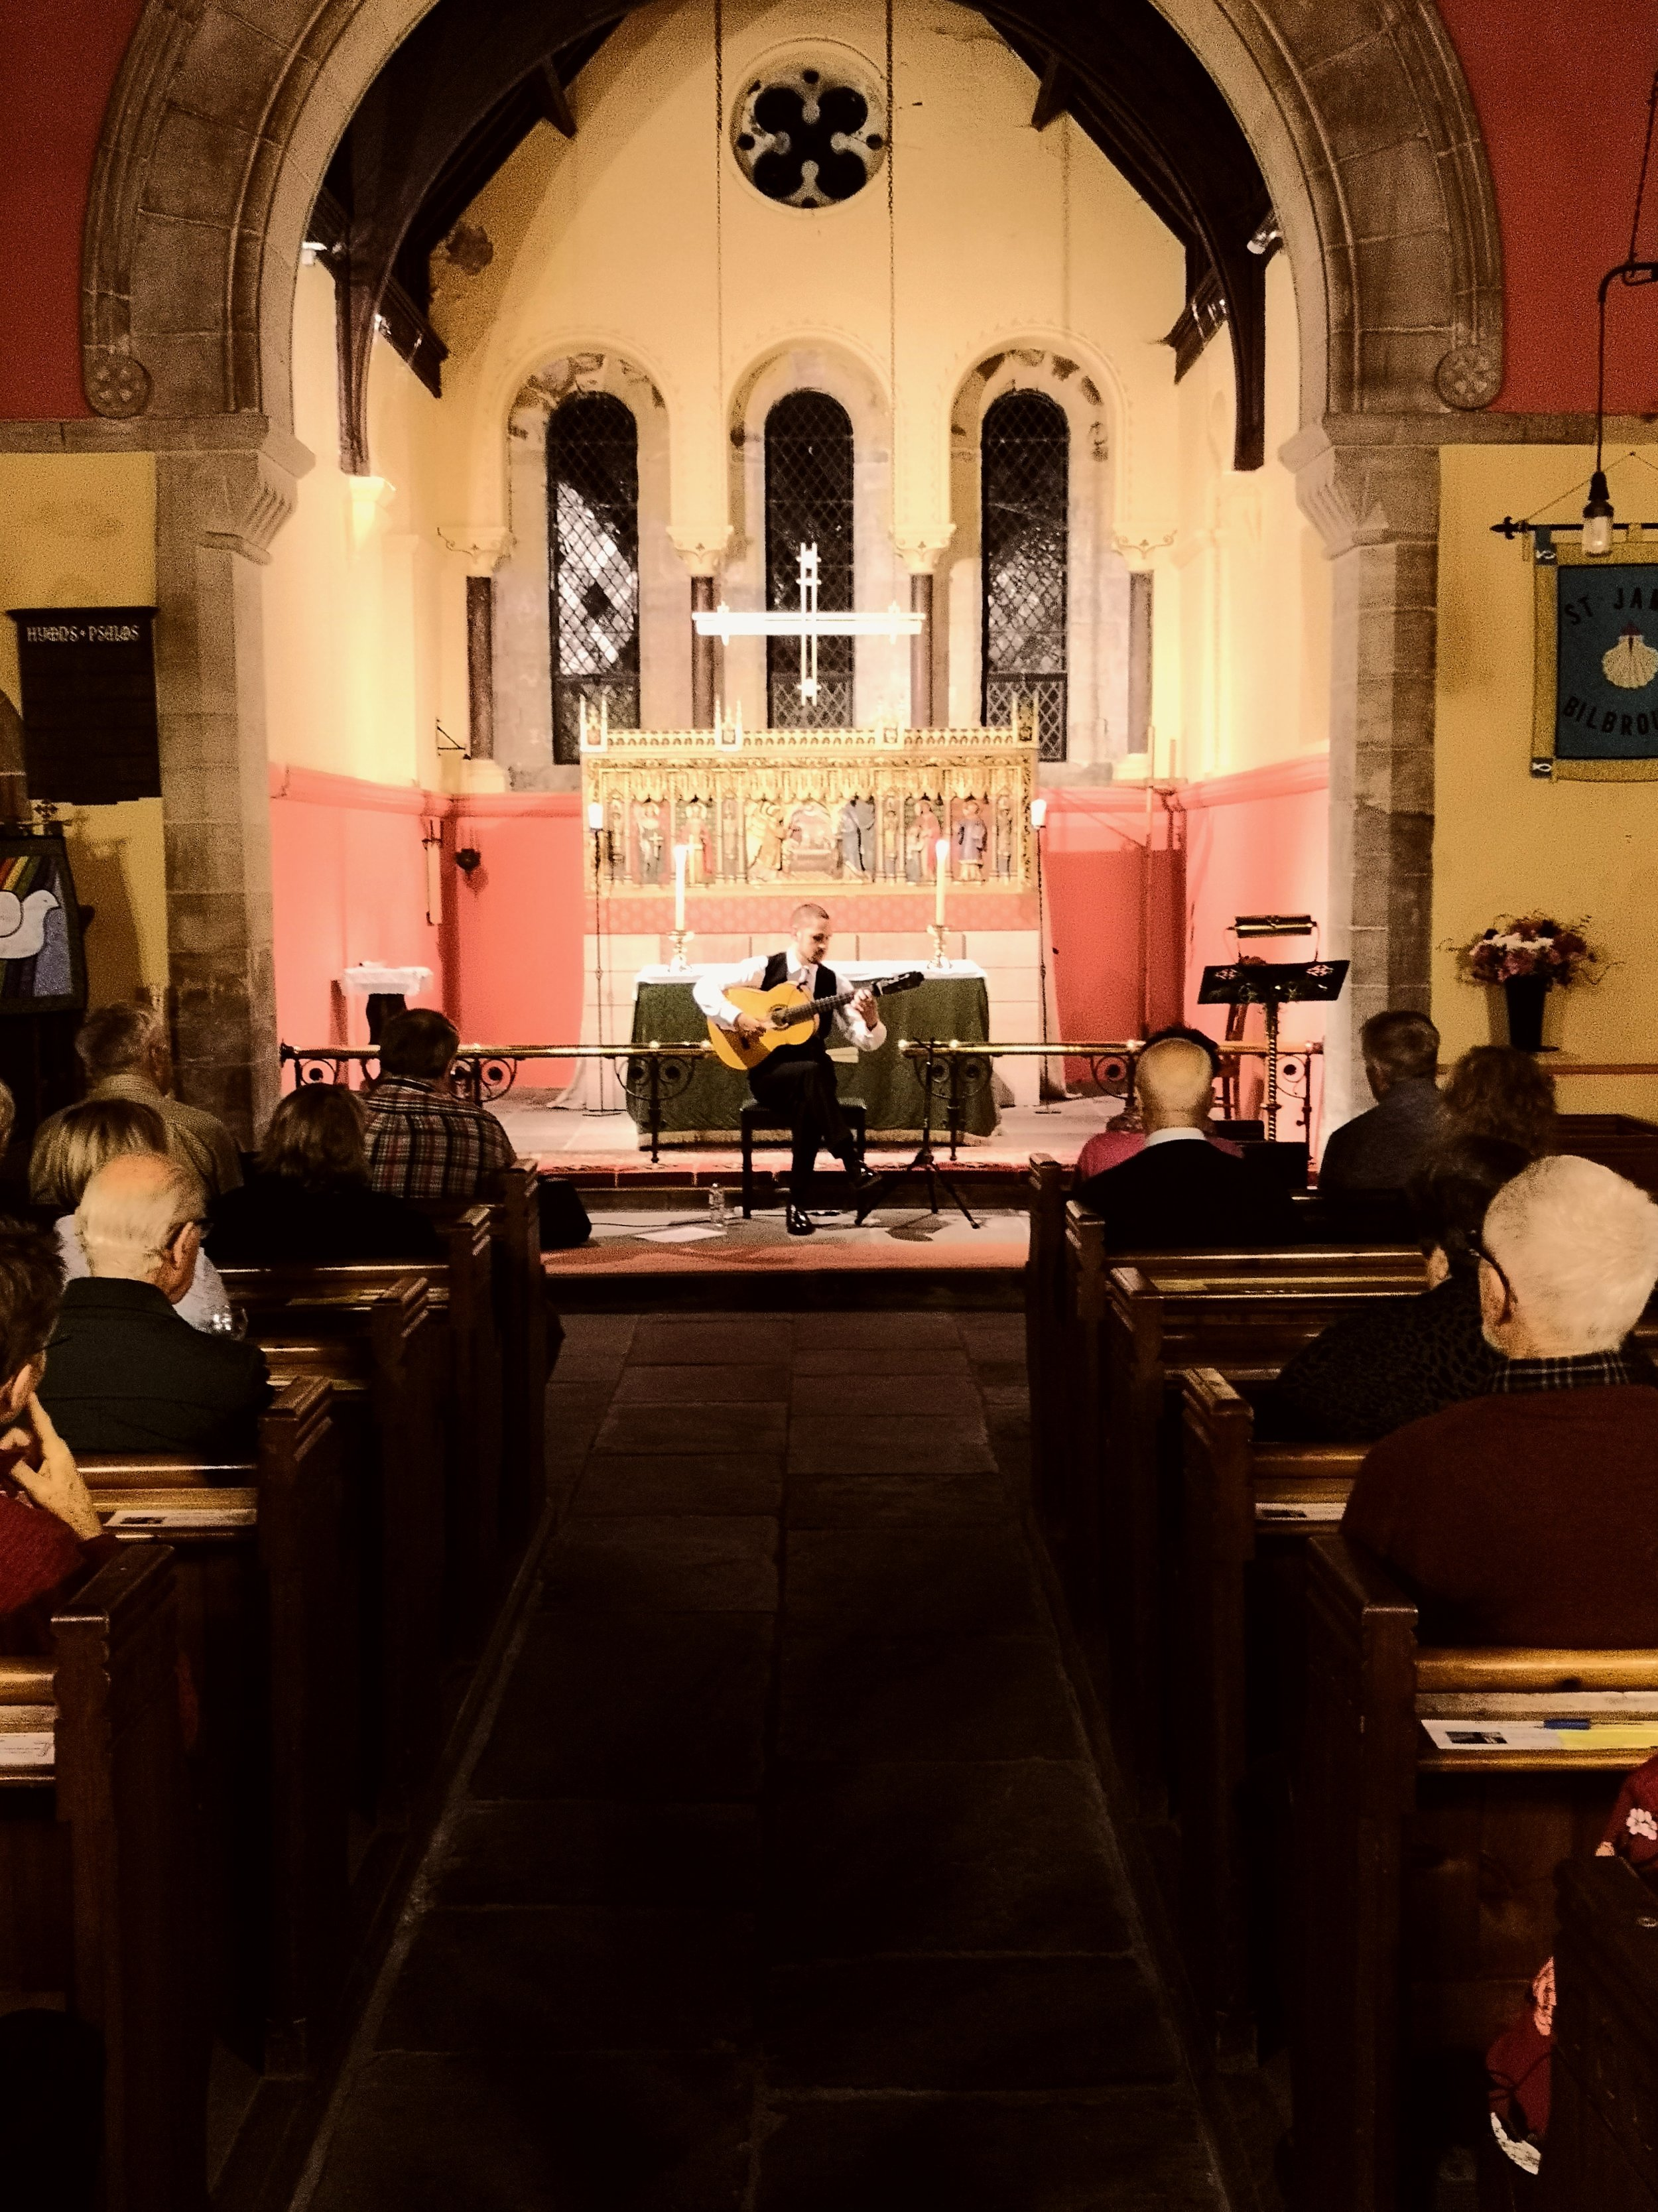 Samuel Moore live on Oct 12th in Saint James Church (Bilbrough)